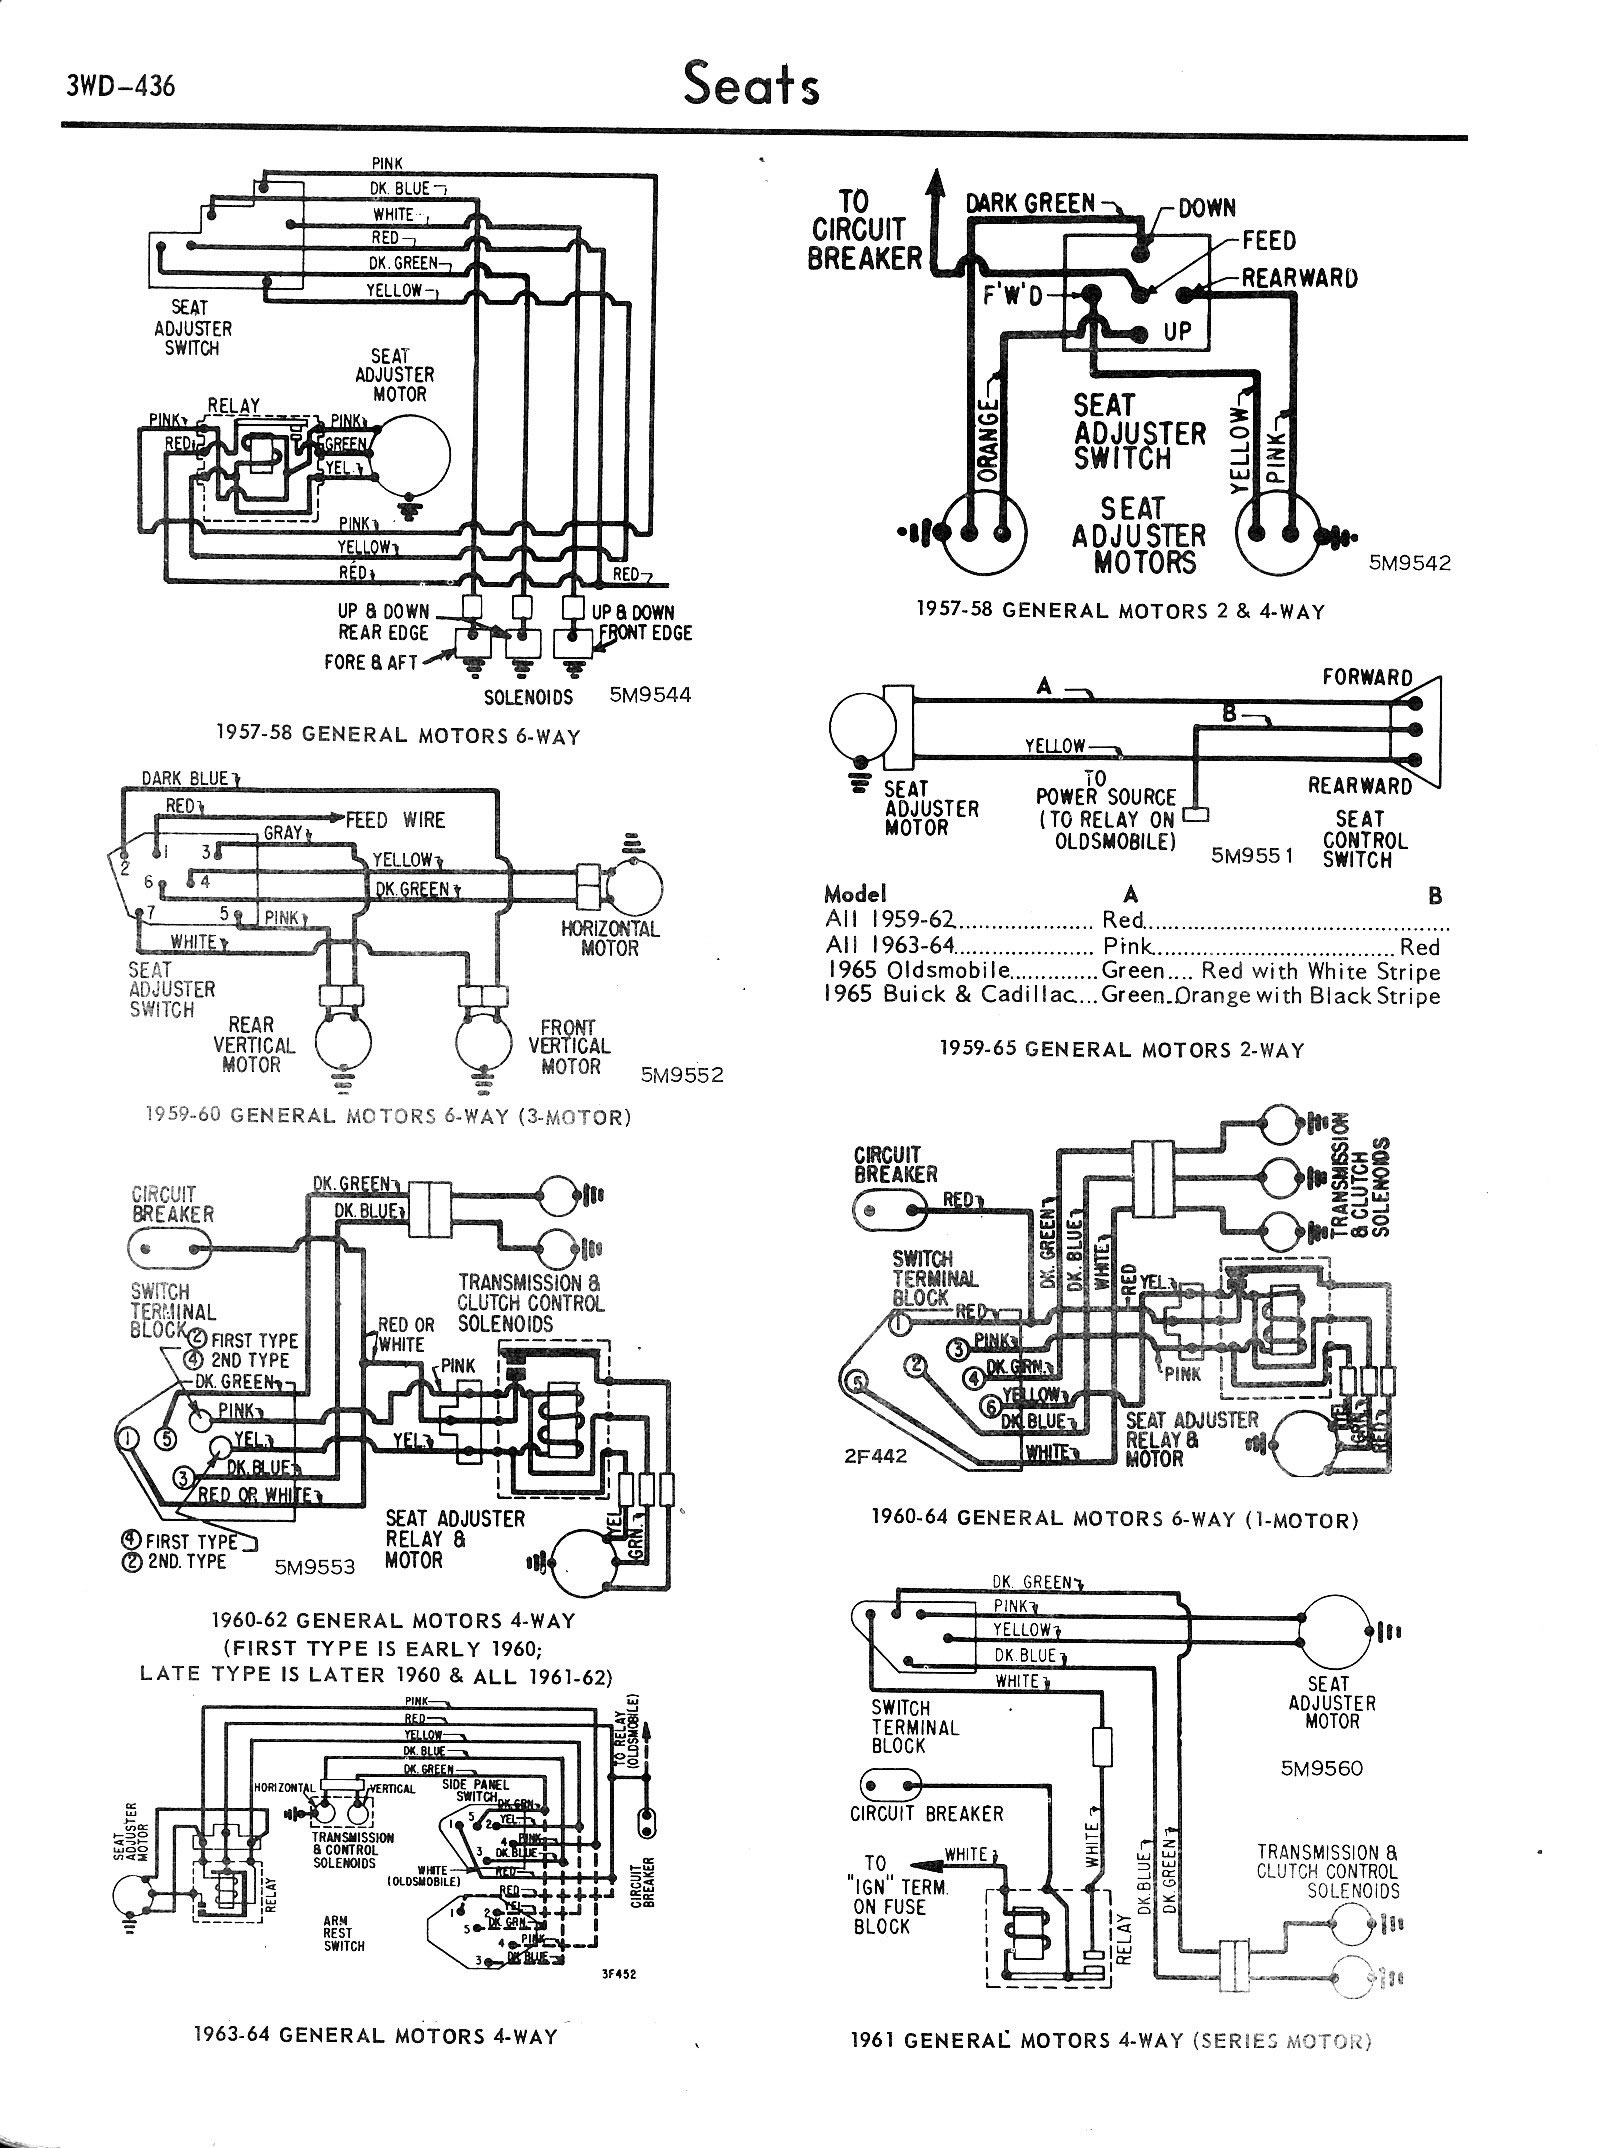 12 volt battery wiring diagram switch to accessory 12 get free image about wiring diagram